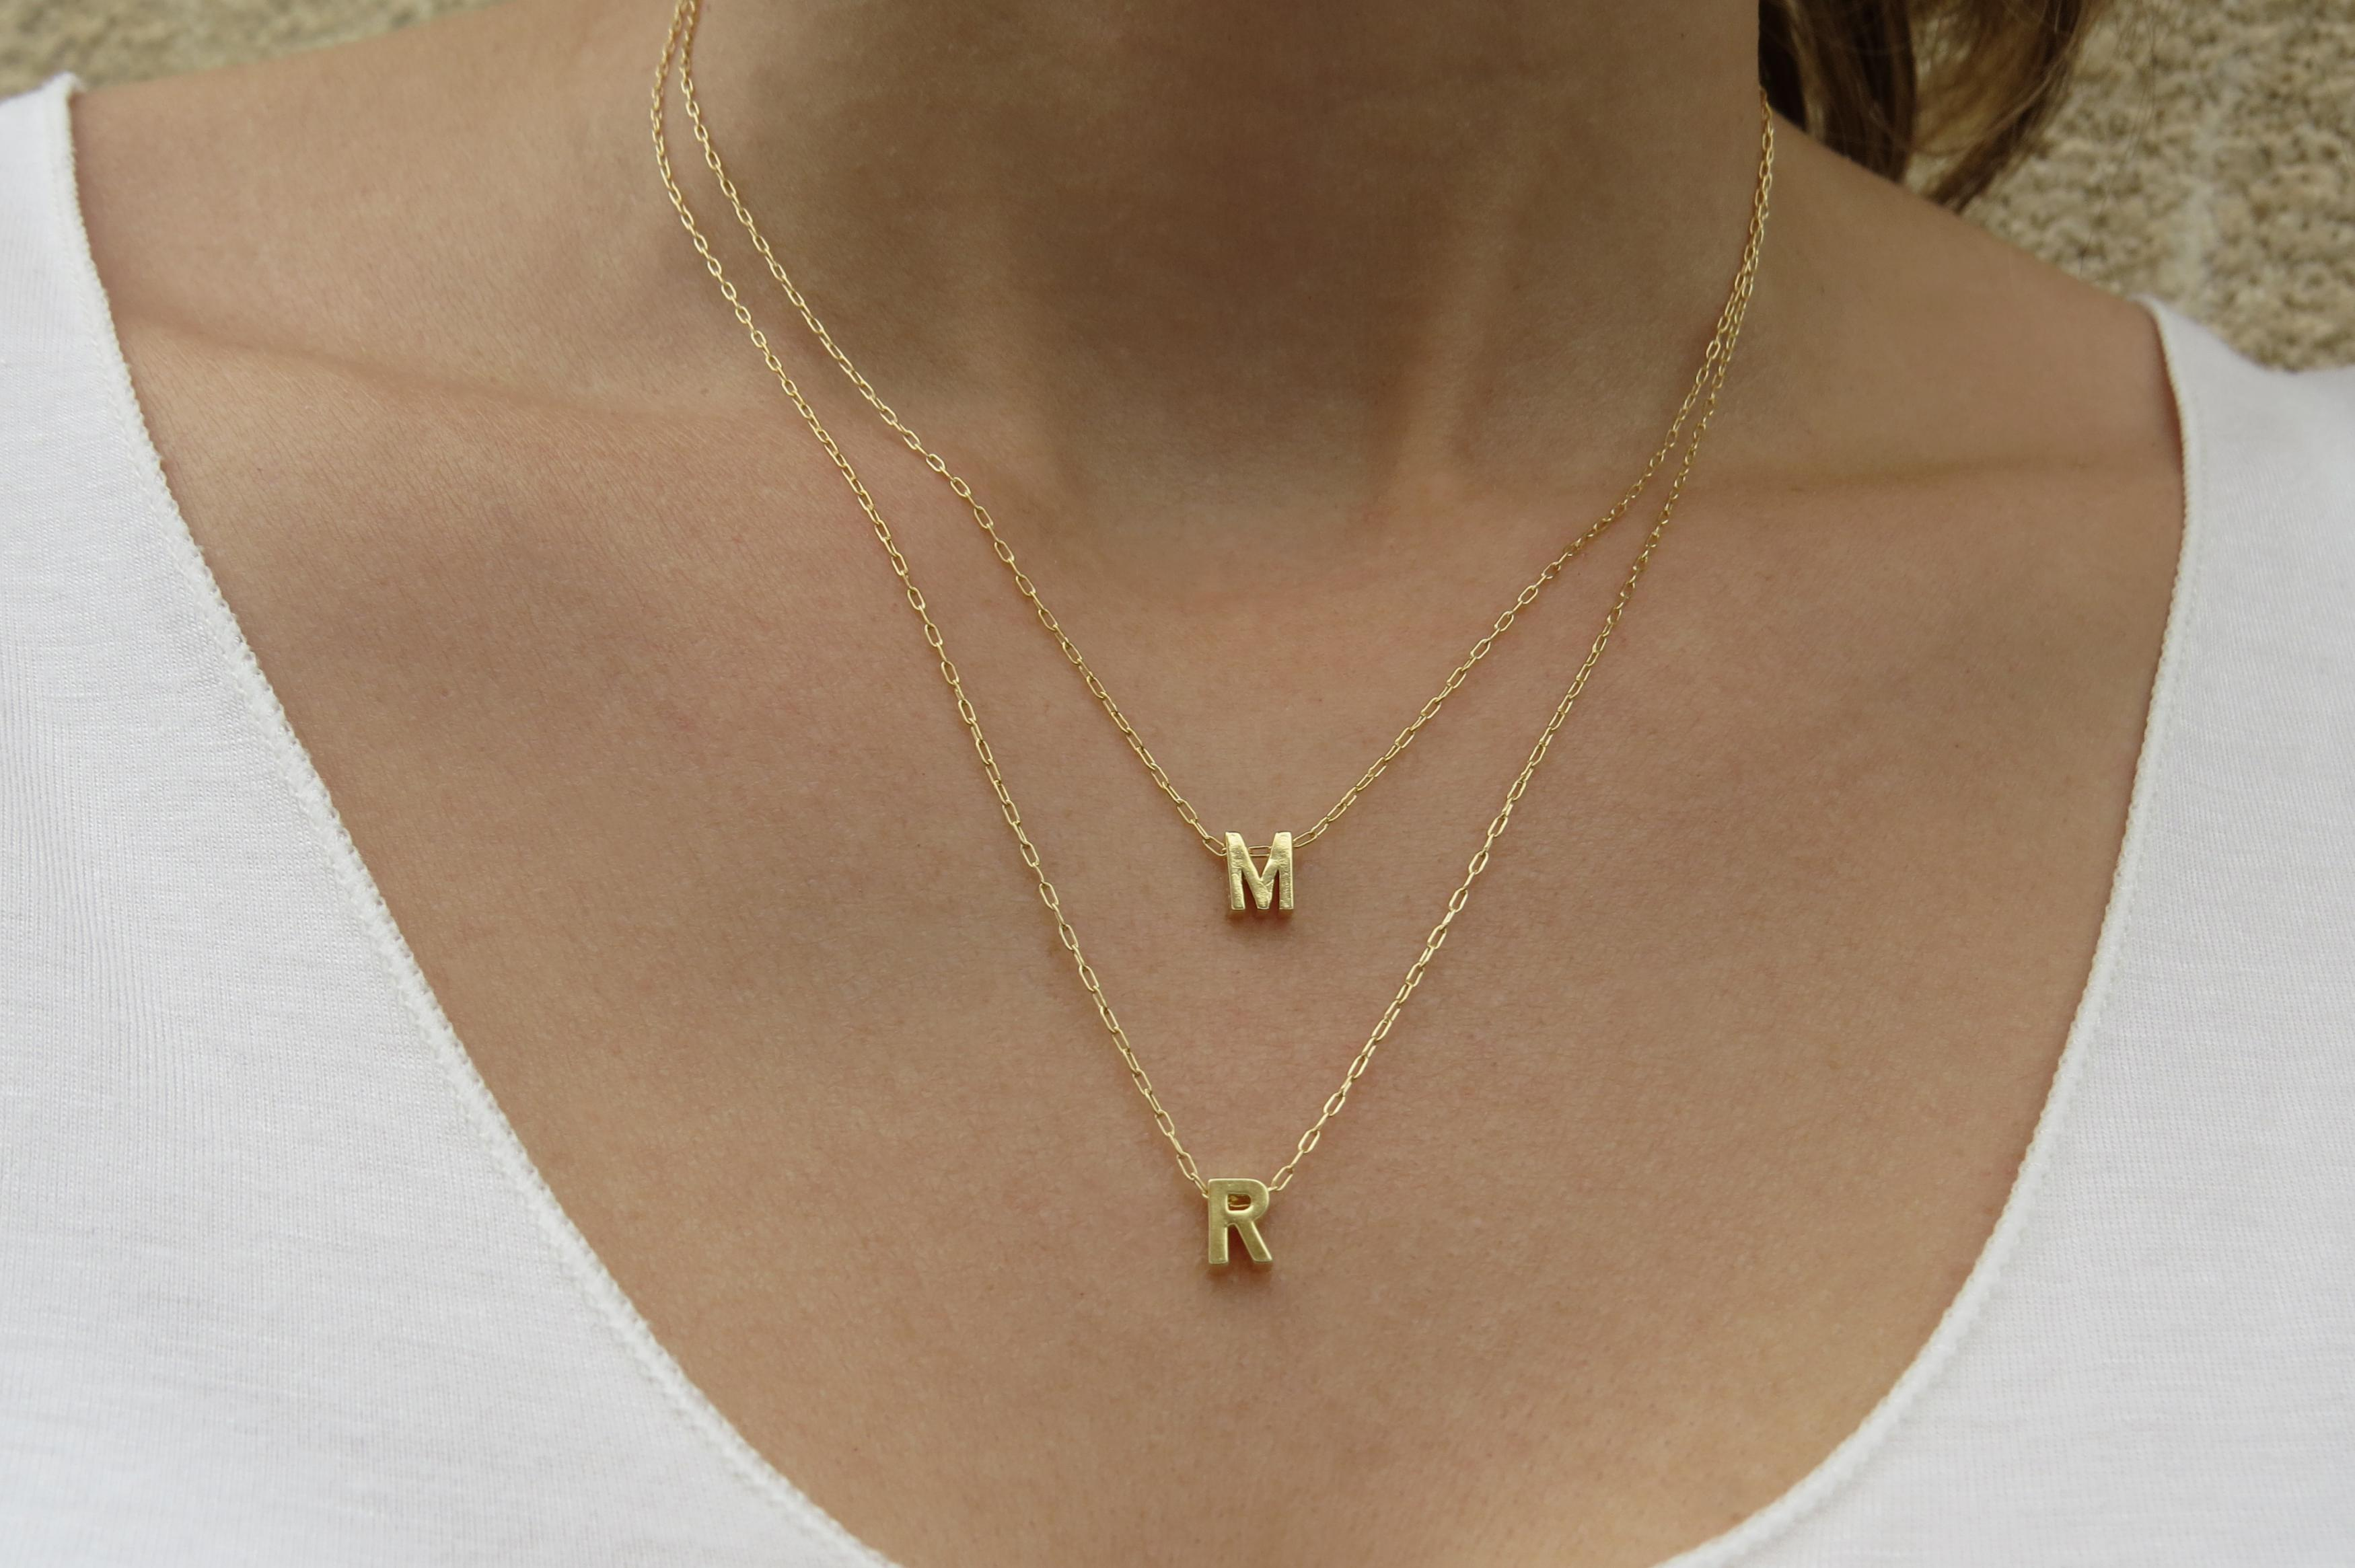 Goldfilled initial necklace gold letter necklace gold necklace goldfilled initial necklace gold letter necklace gold necklace bridesmaid gift layers necklace personalized necklace initial jewelry mozeypictures